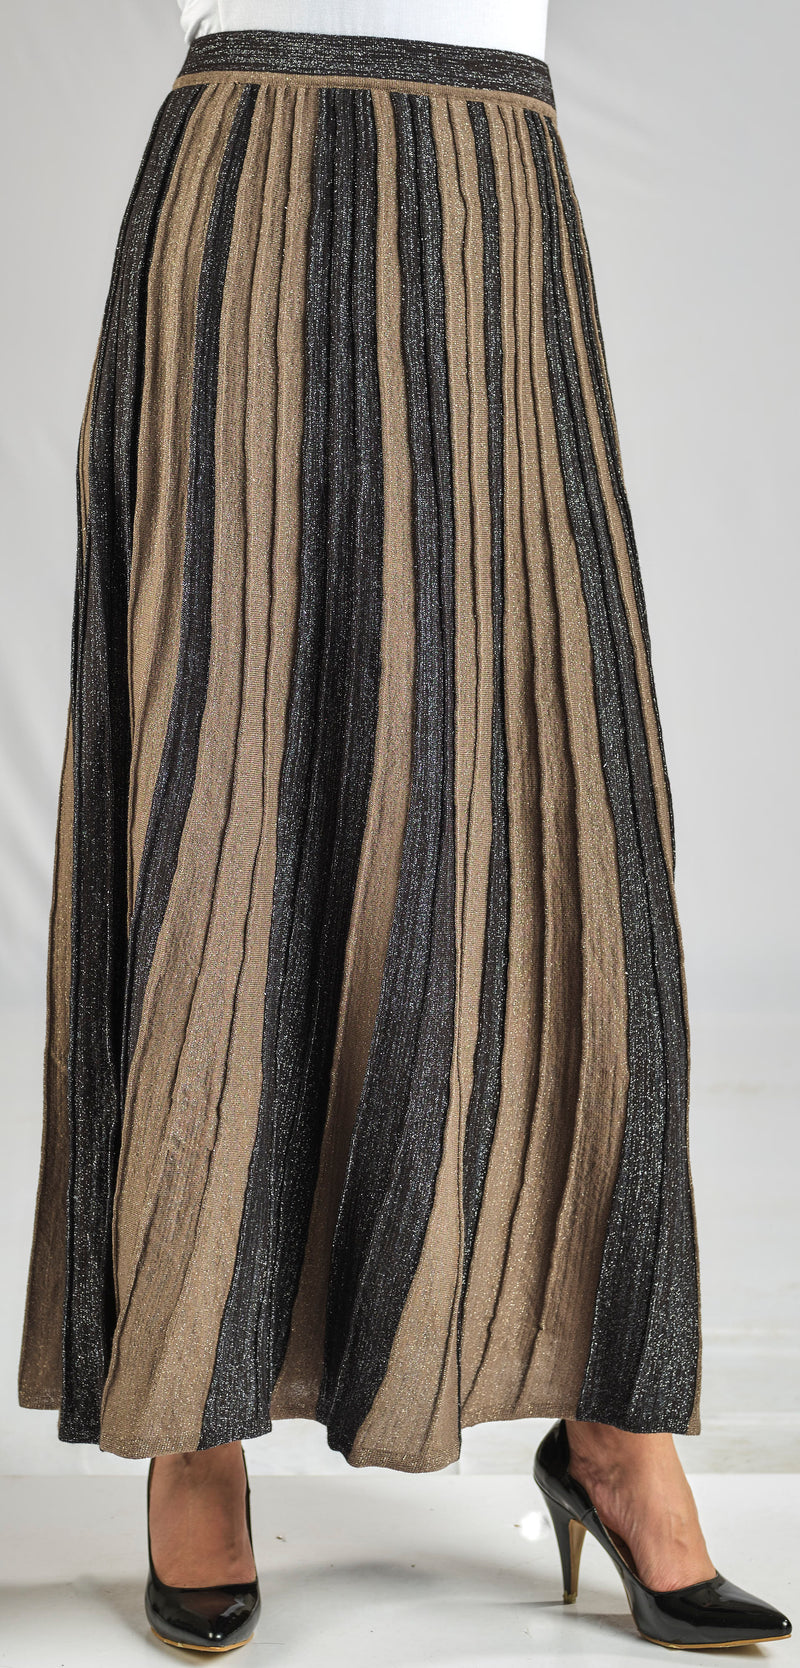 LUXURY KNITWEAR  PLEATED EVASE SKIRT WITH TONE TO TONE SHINY LUREX YARN